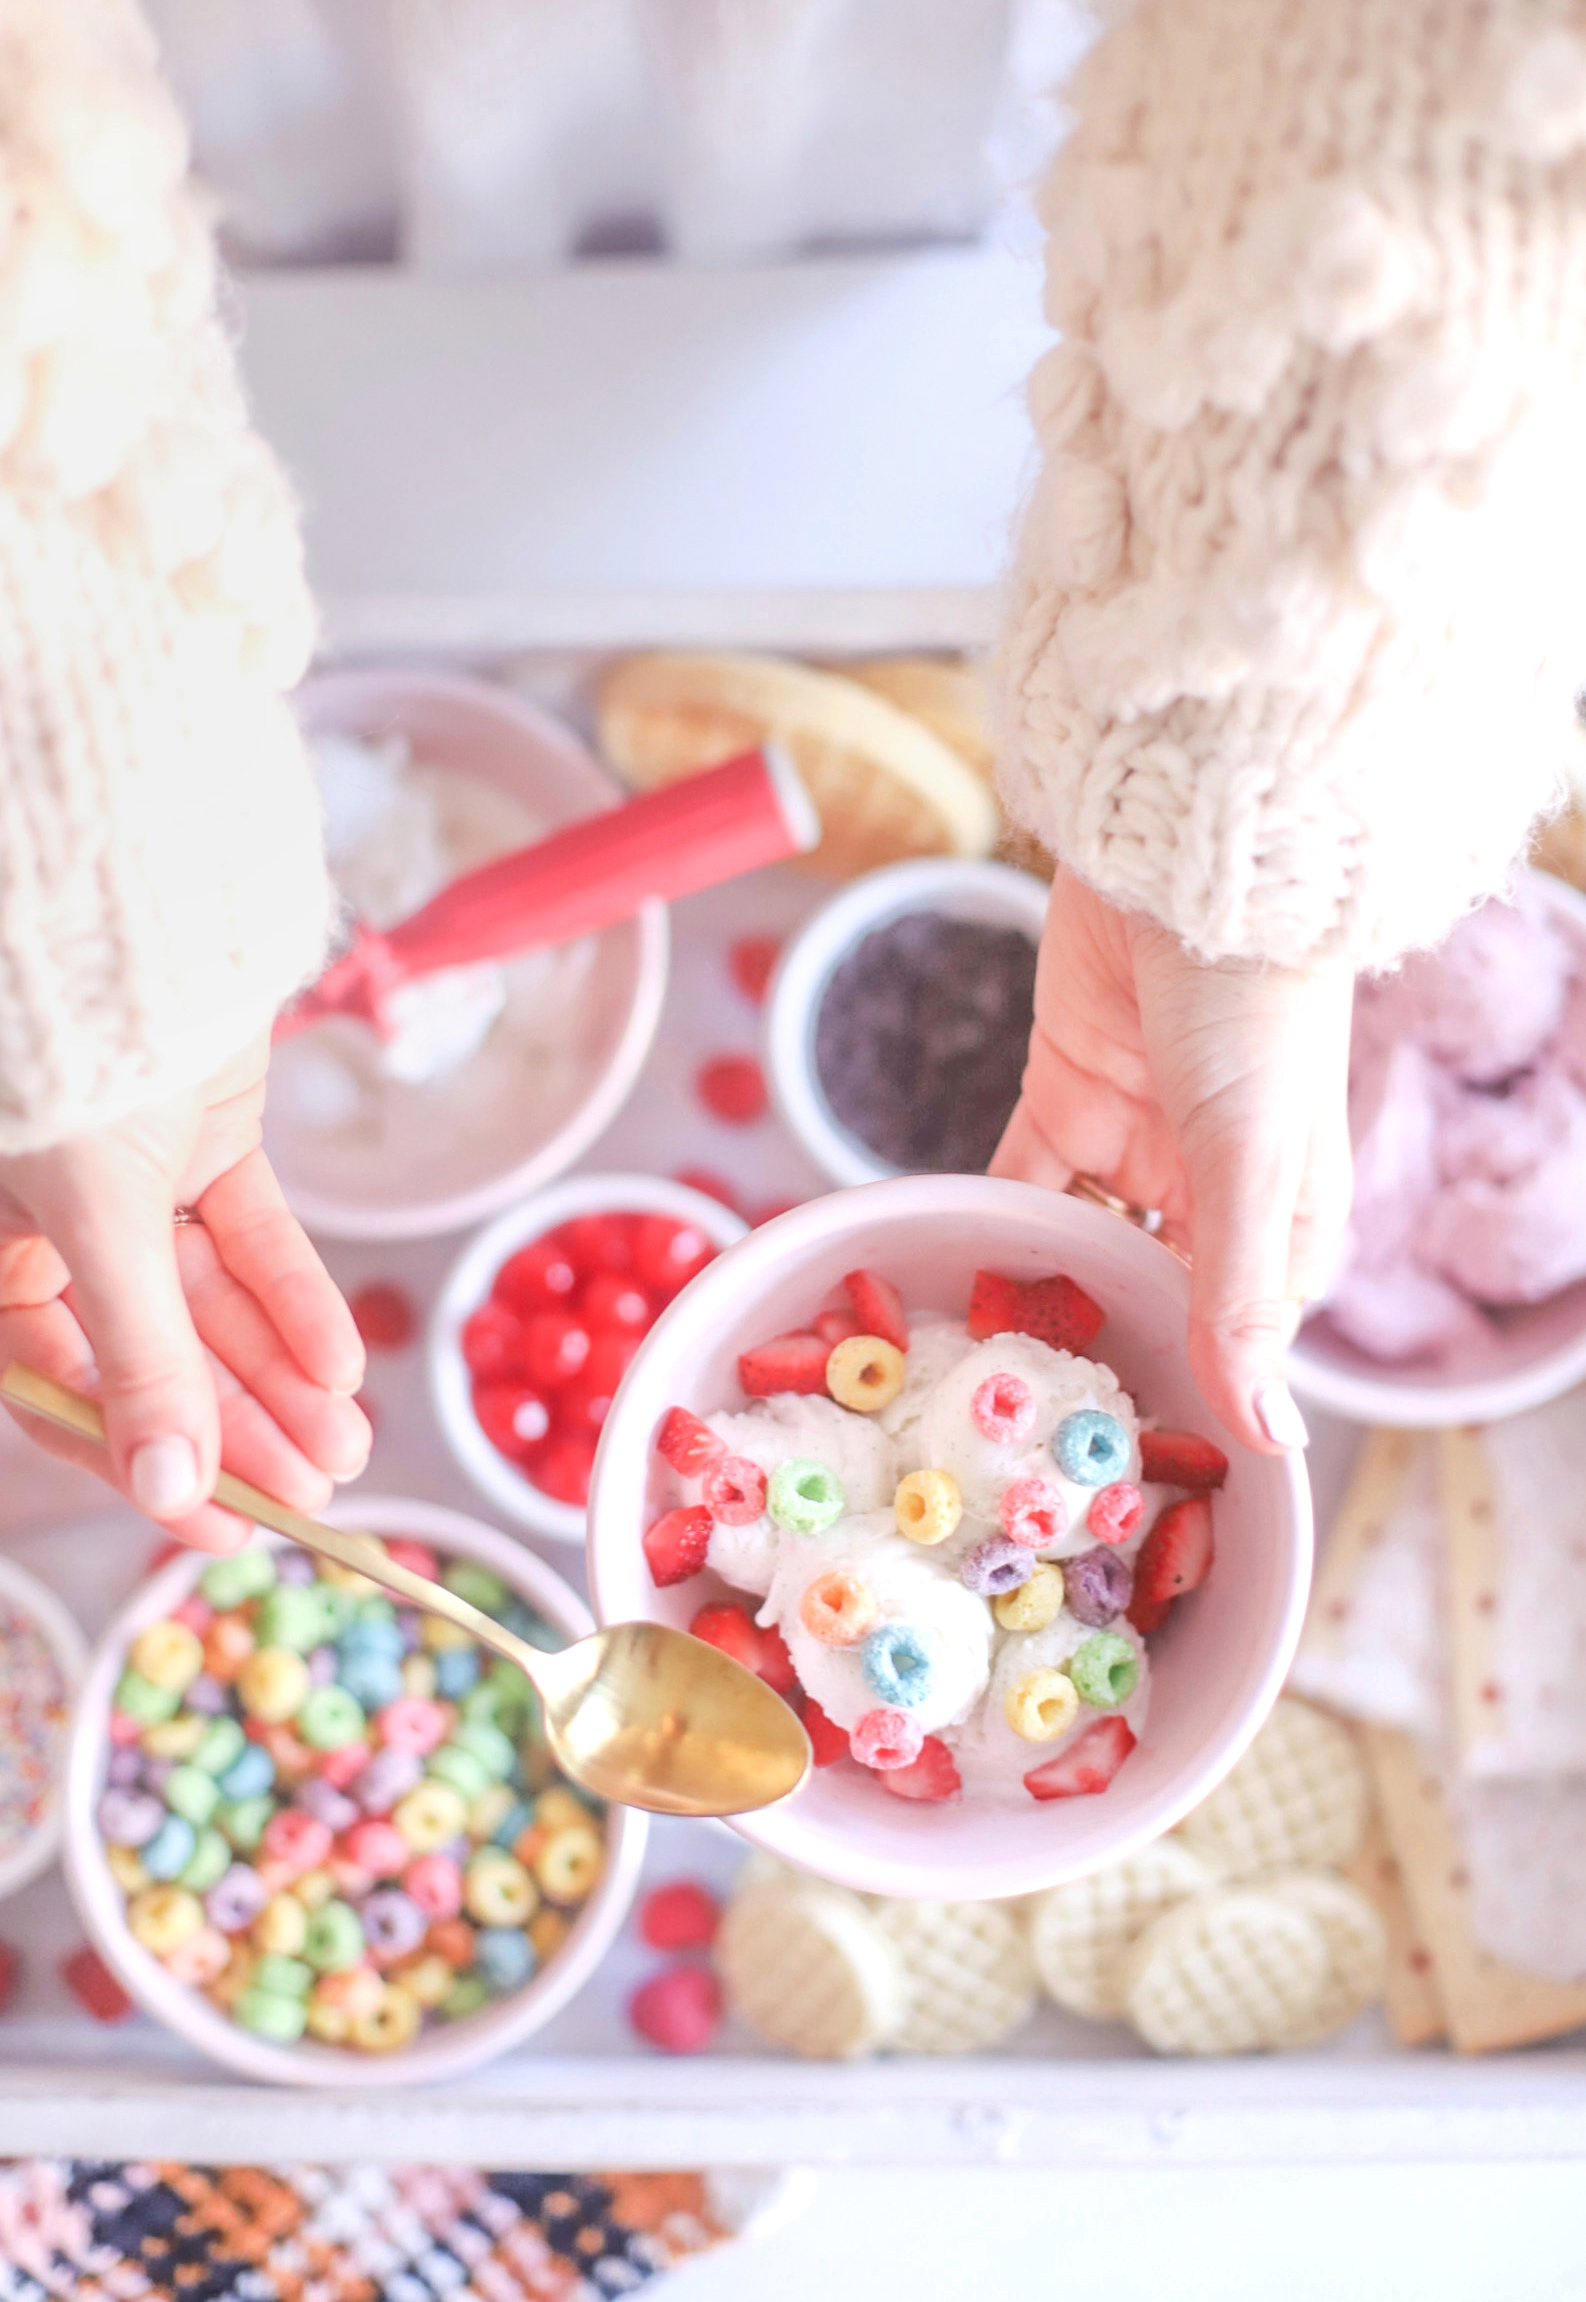 woman holding a dessert with toppings